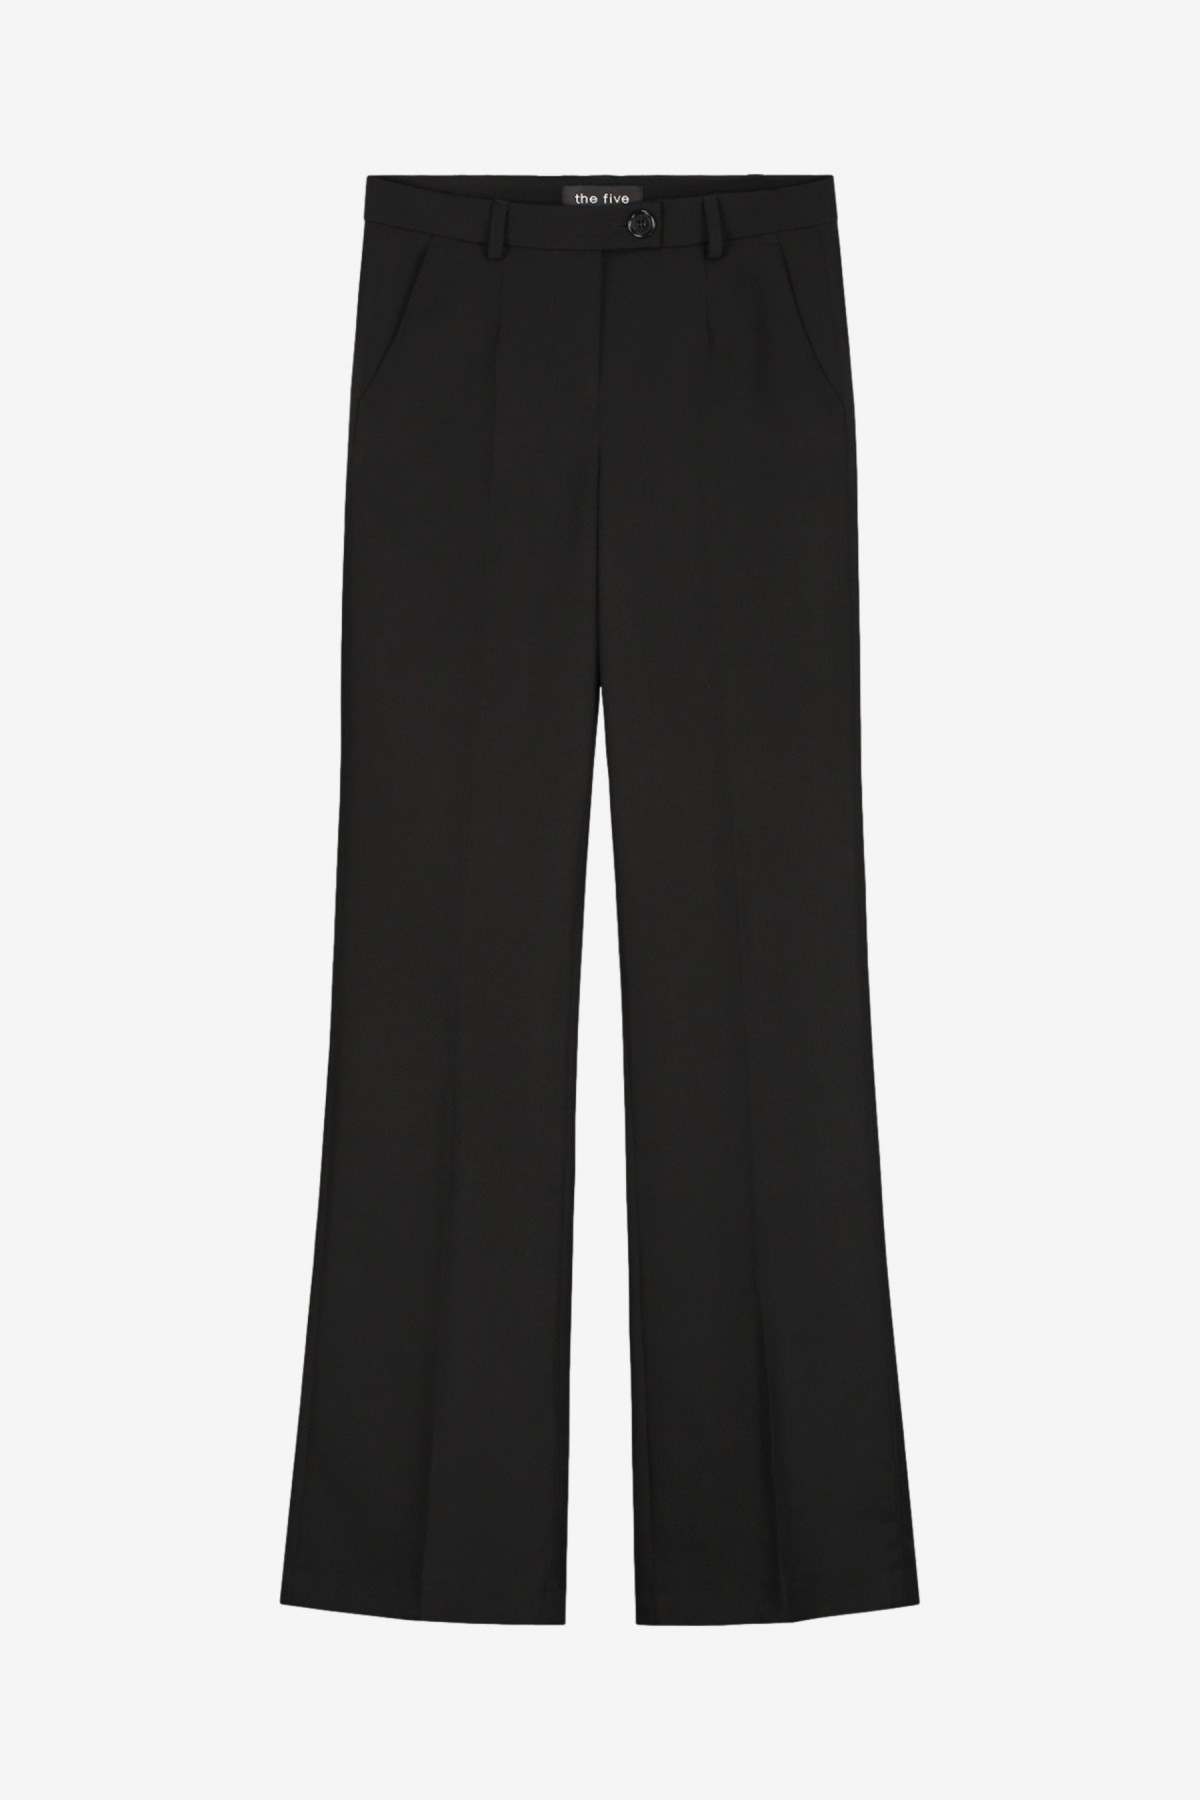 The Five Studio The Trousers in Black